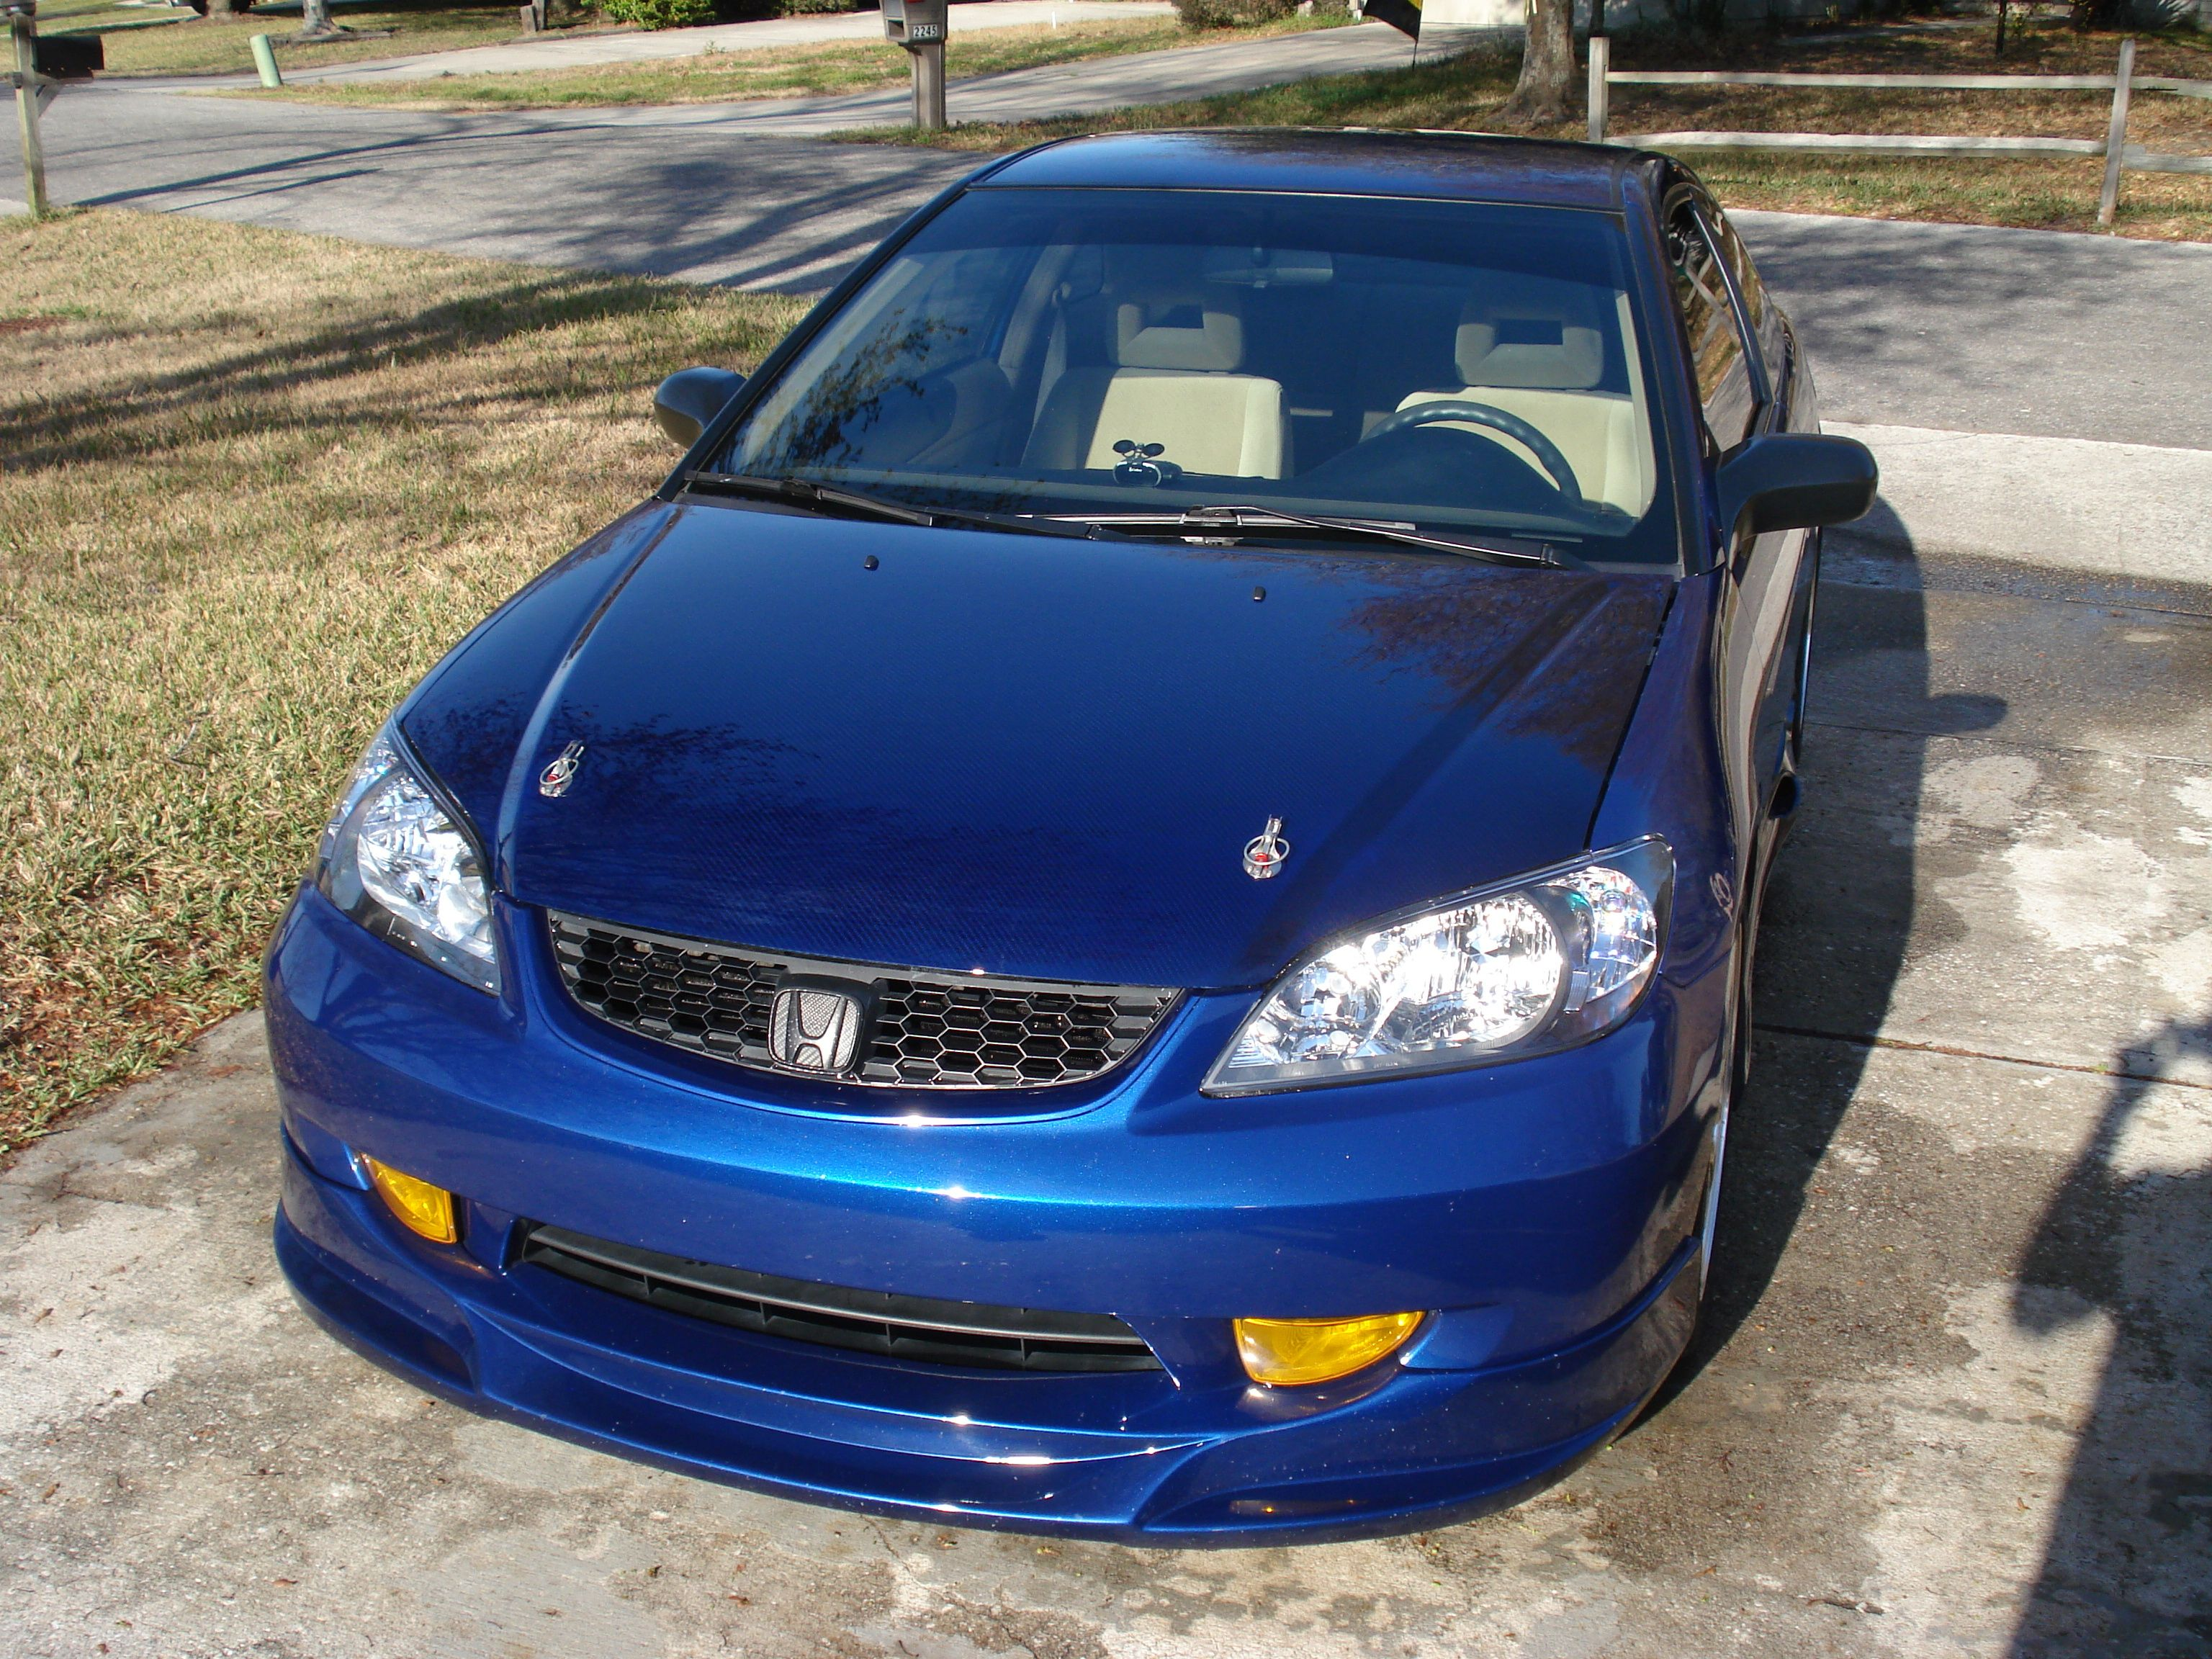 2004 2005 Honda Civic 7th Generation Em Es